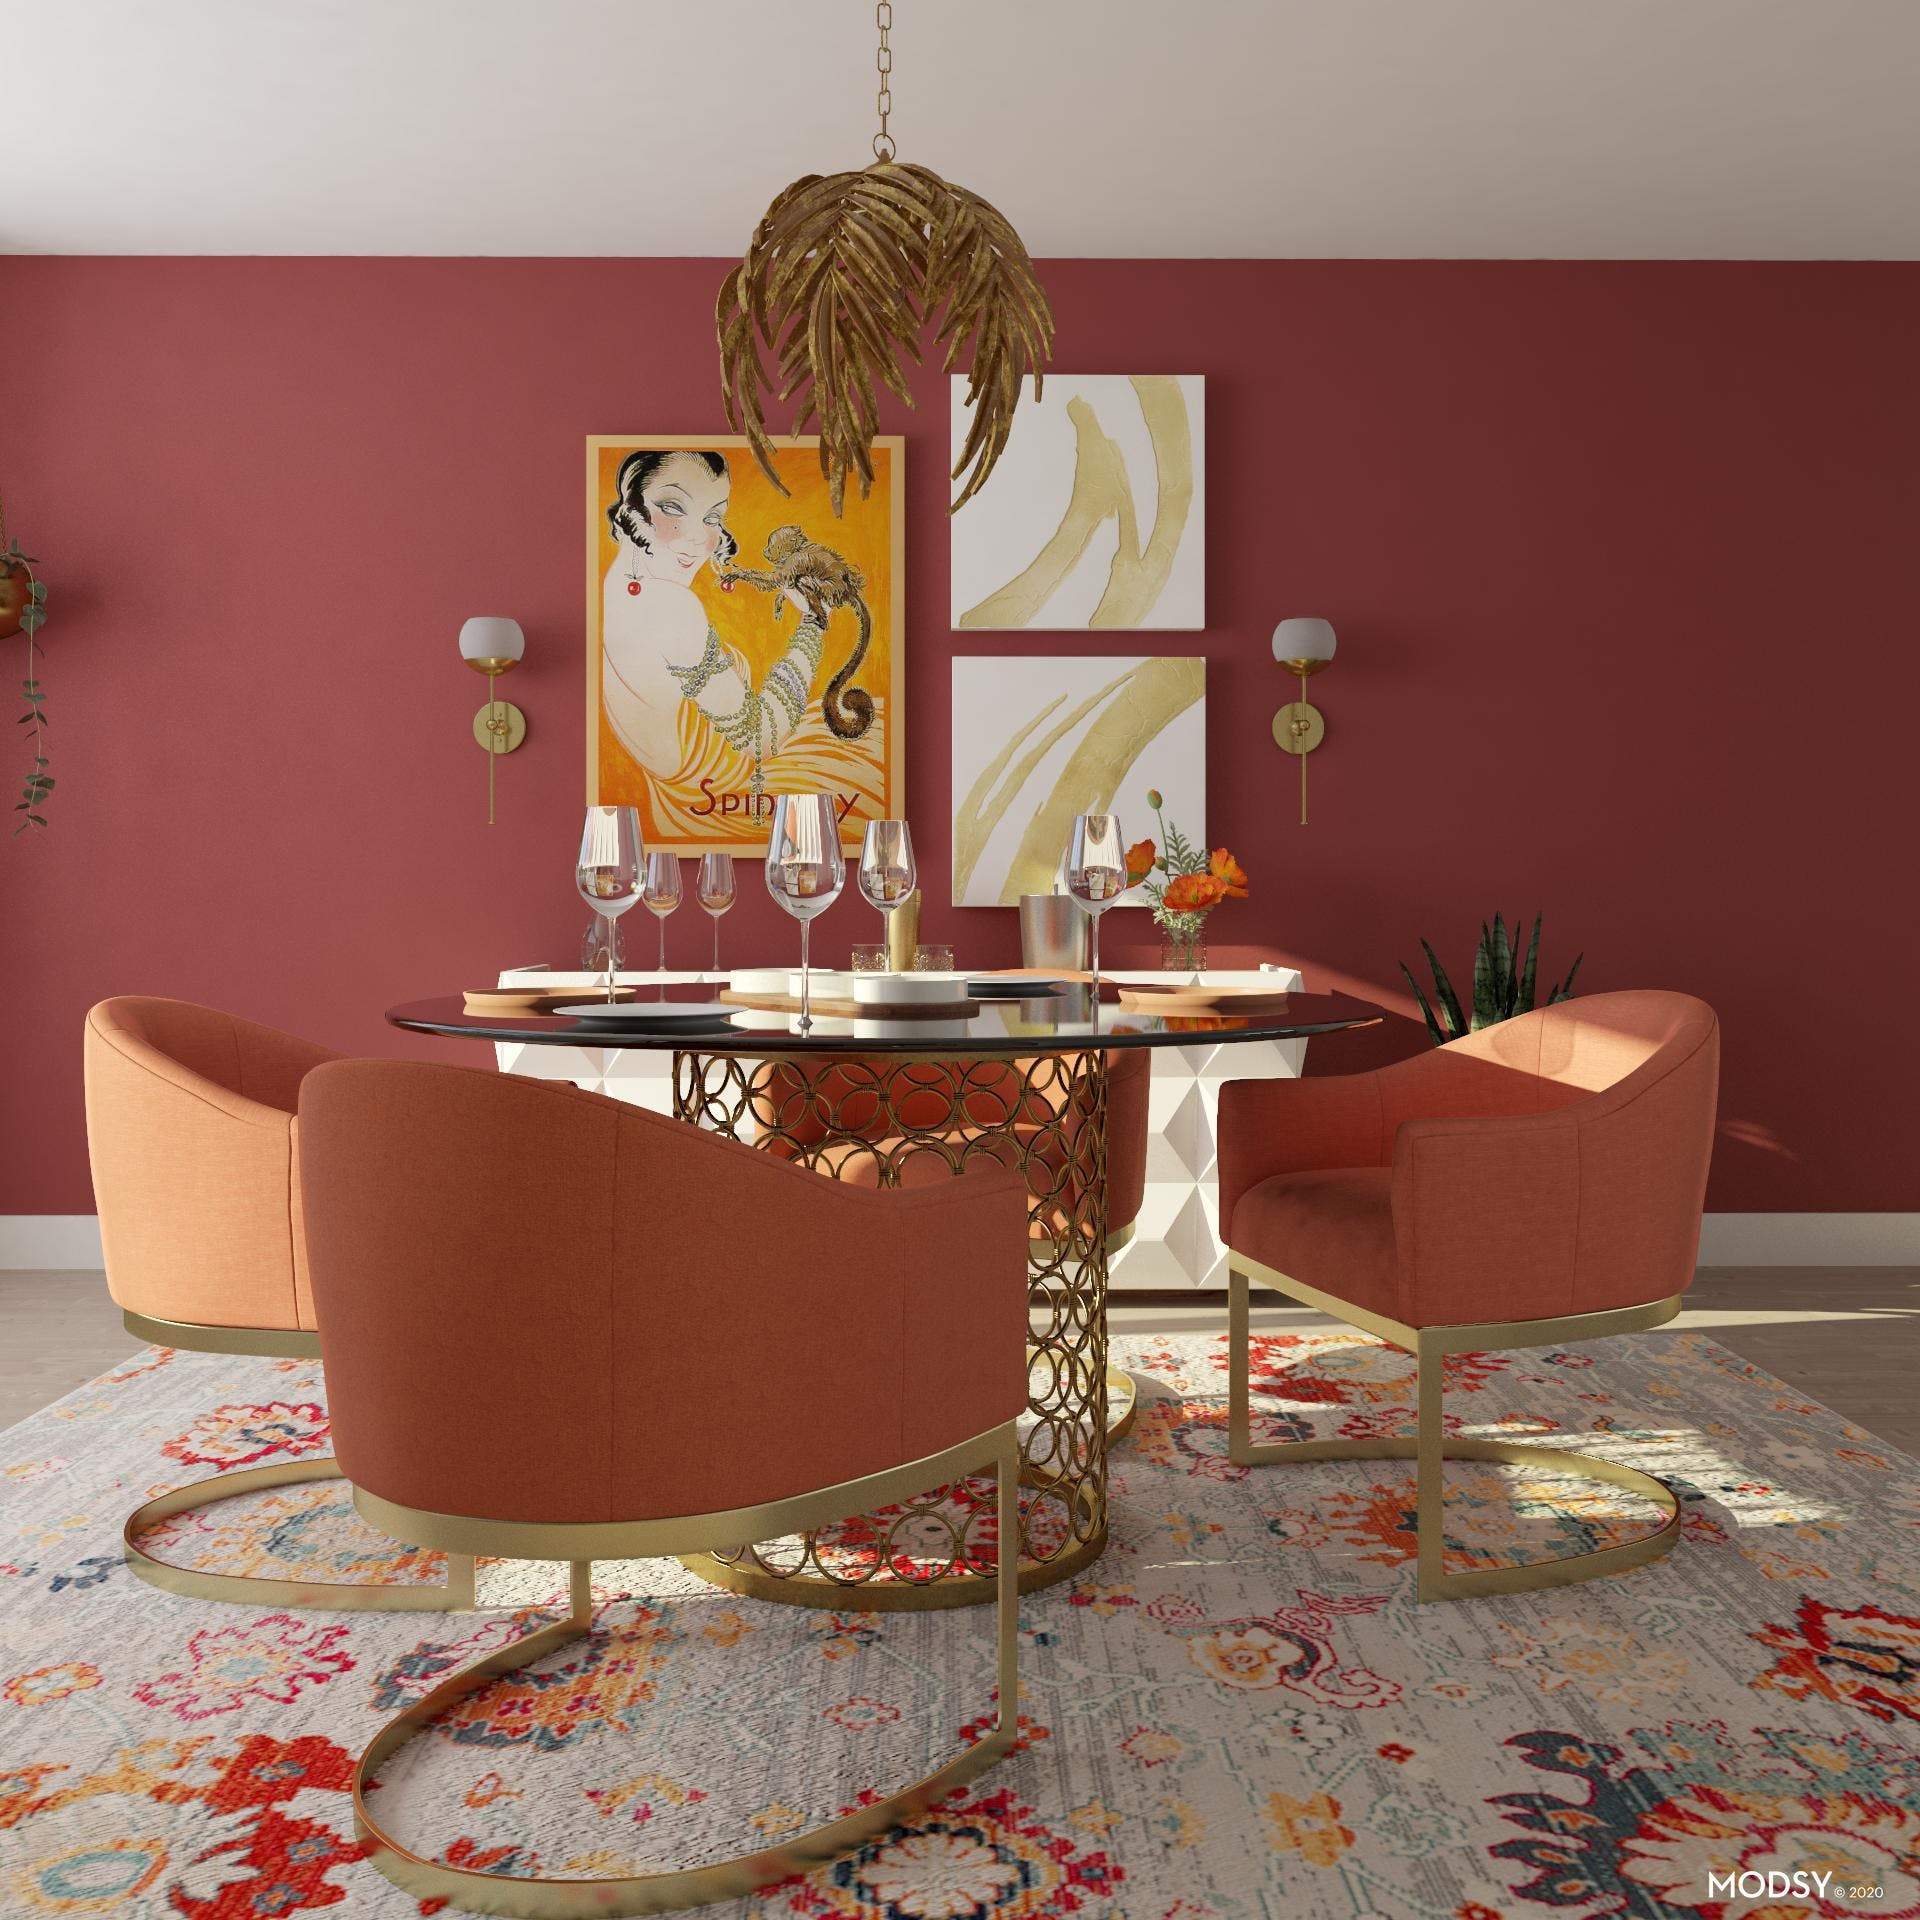 Glam Dining for All Guests